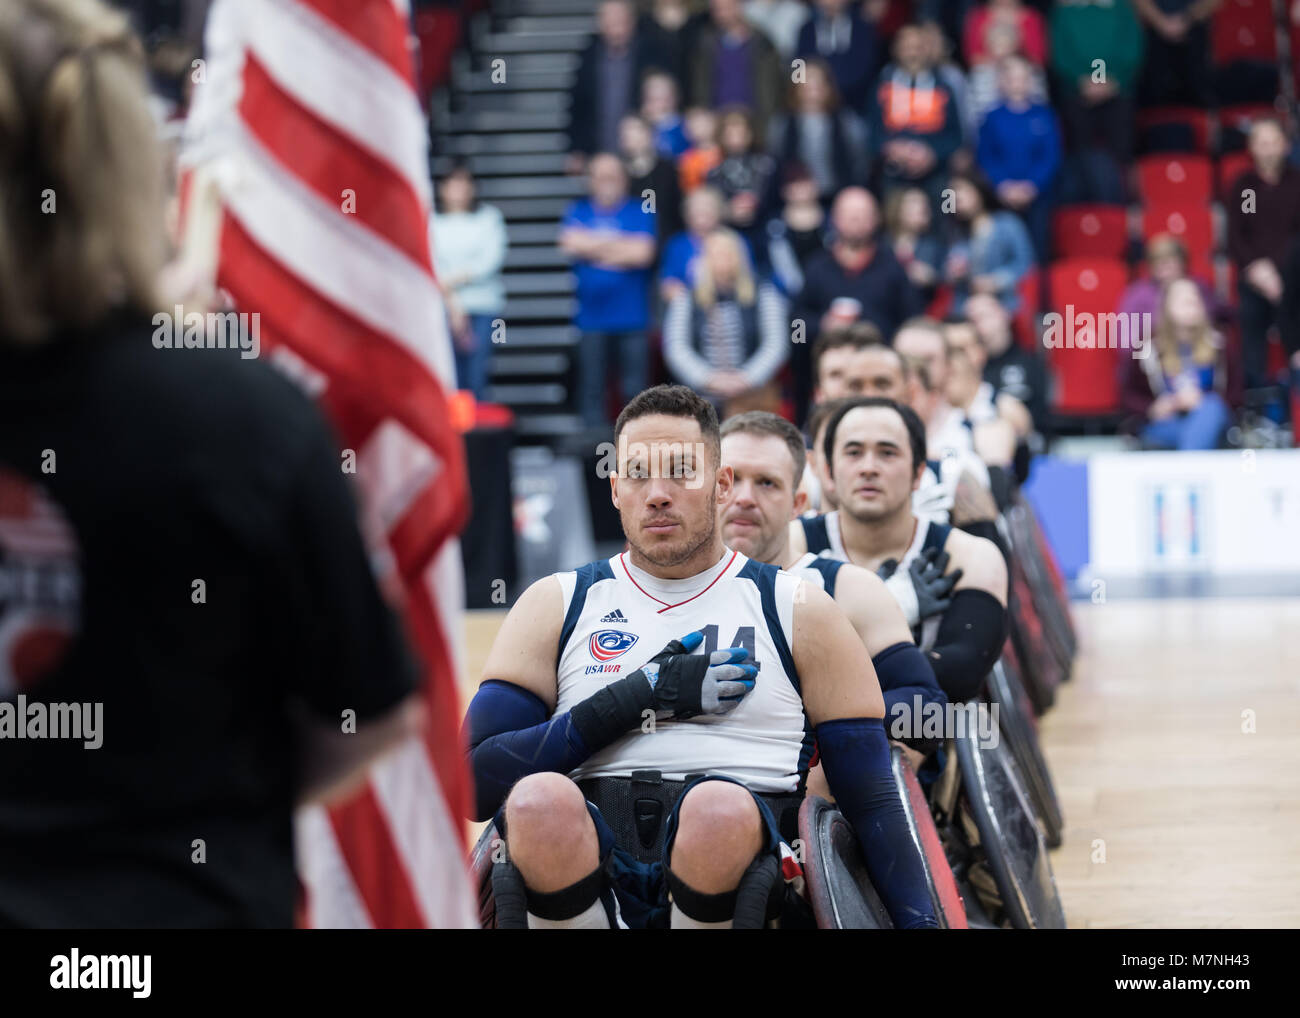 Leicester, UK. 11th March, 2018.  King Power wheelchair rugby quad nations tournament at Leicester Arena, Leicester, - Stock Image